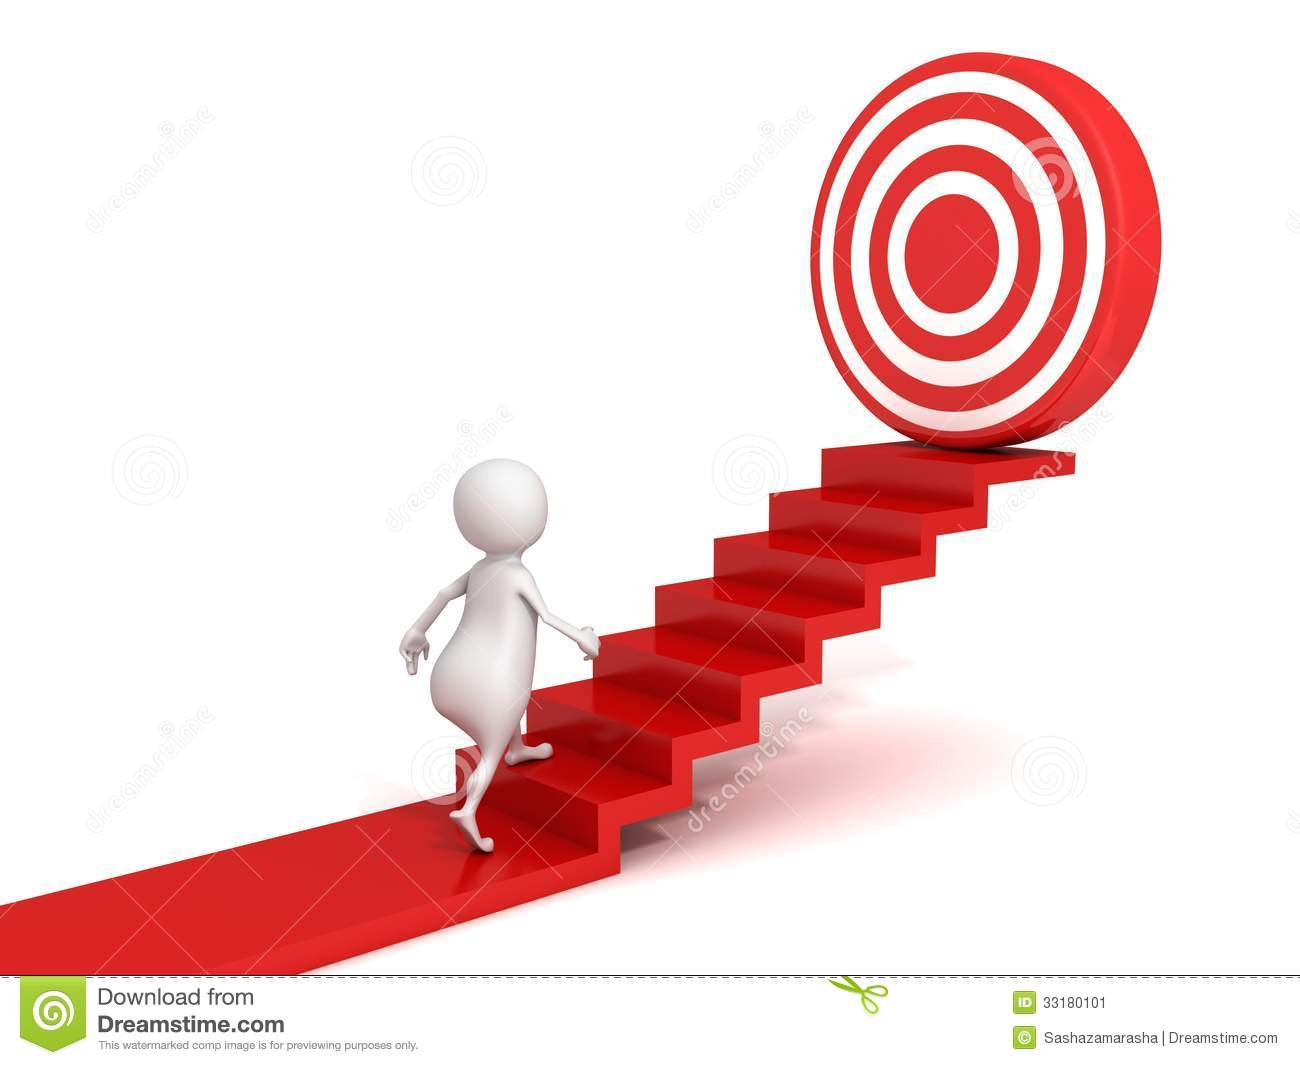 Person Climbing Stairs To Success Stock Vector - Illustration of ... for Climbing Stairs To Success  197uhy